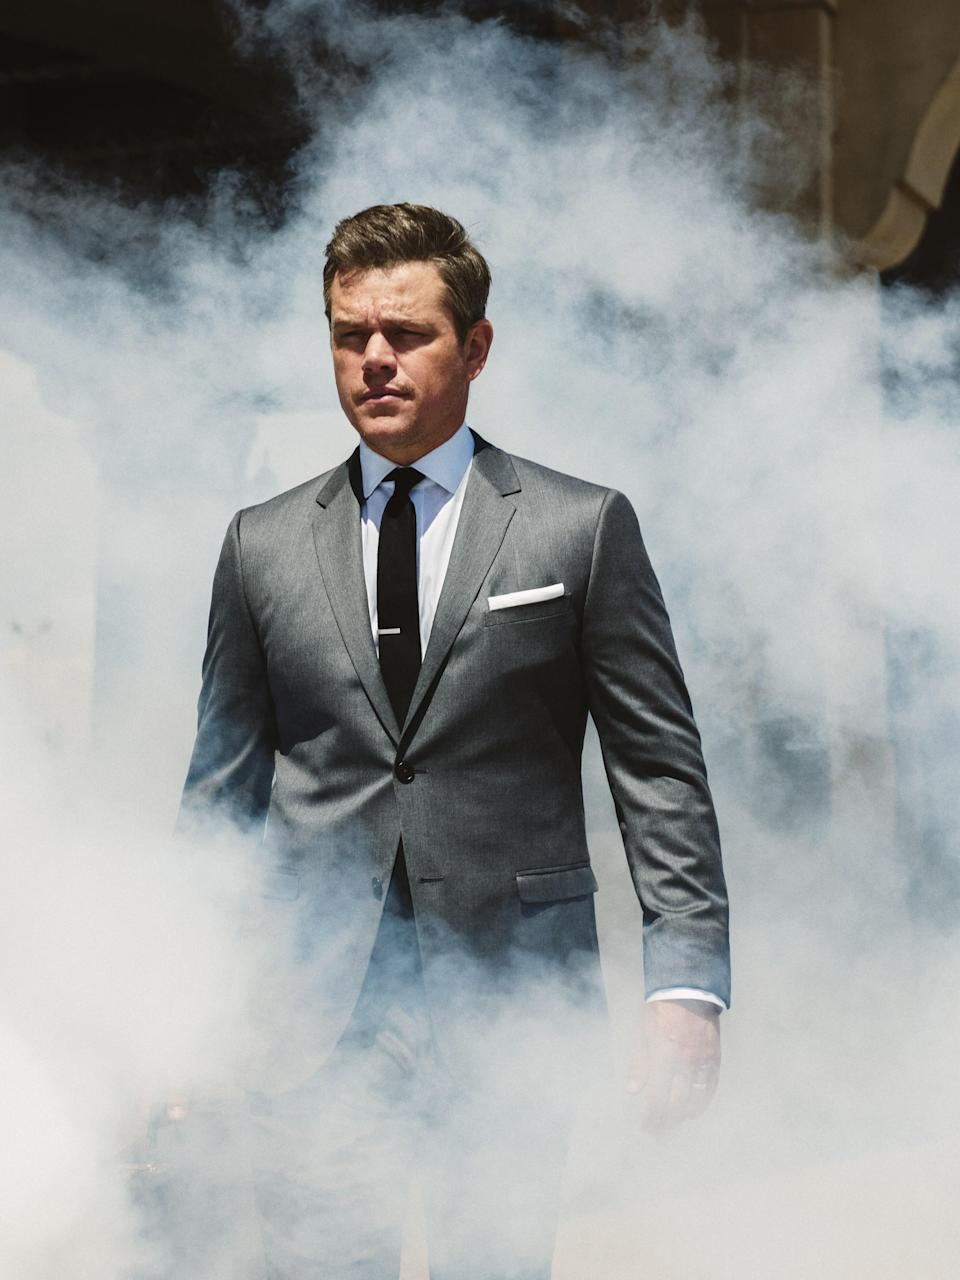 Get back to work in the ultimate businessman fit: gray suit, white dress shirt, black tie. Smoke optional.